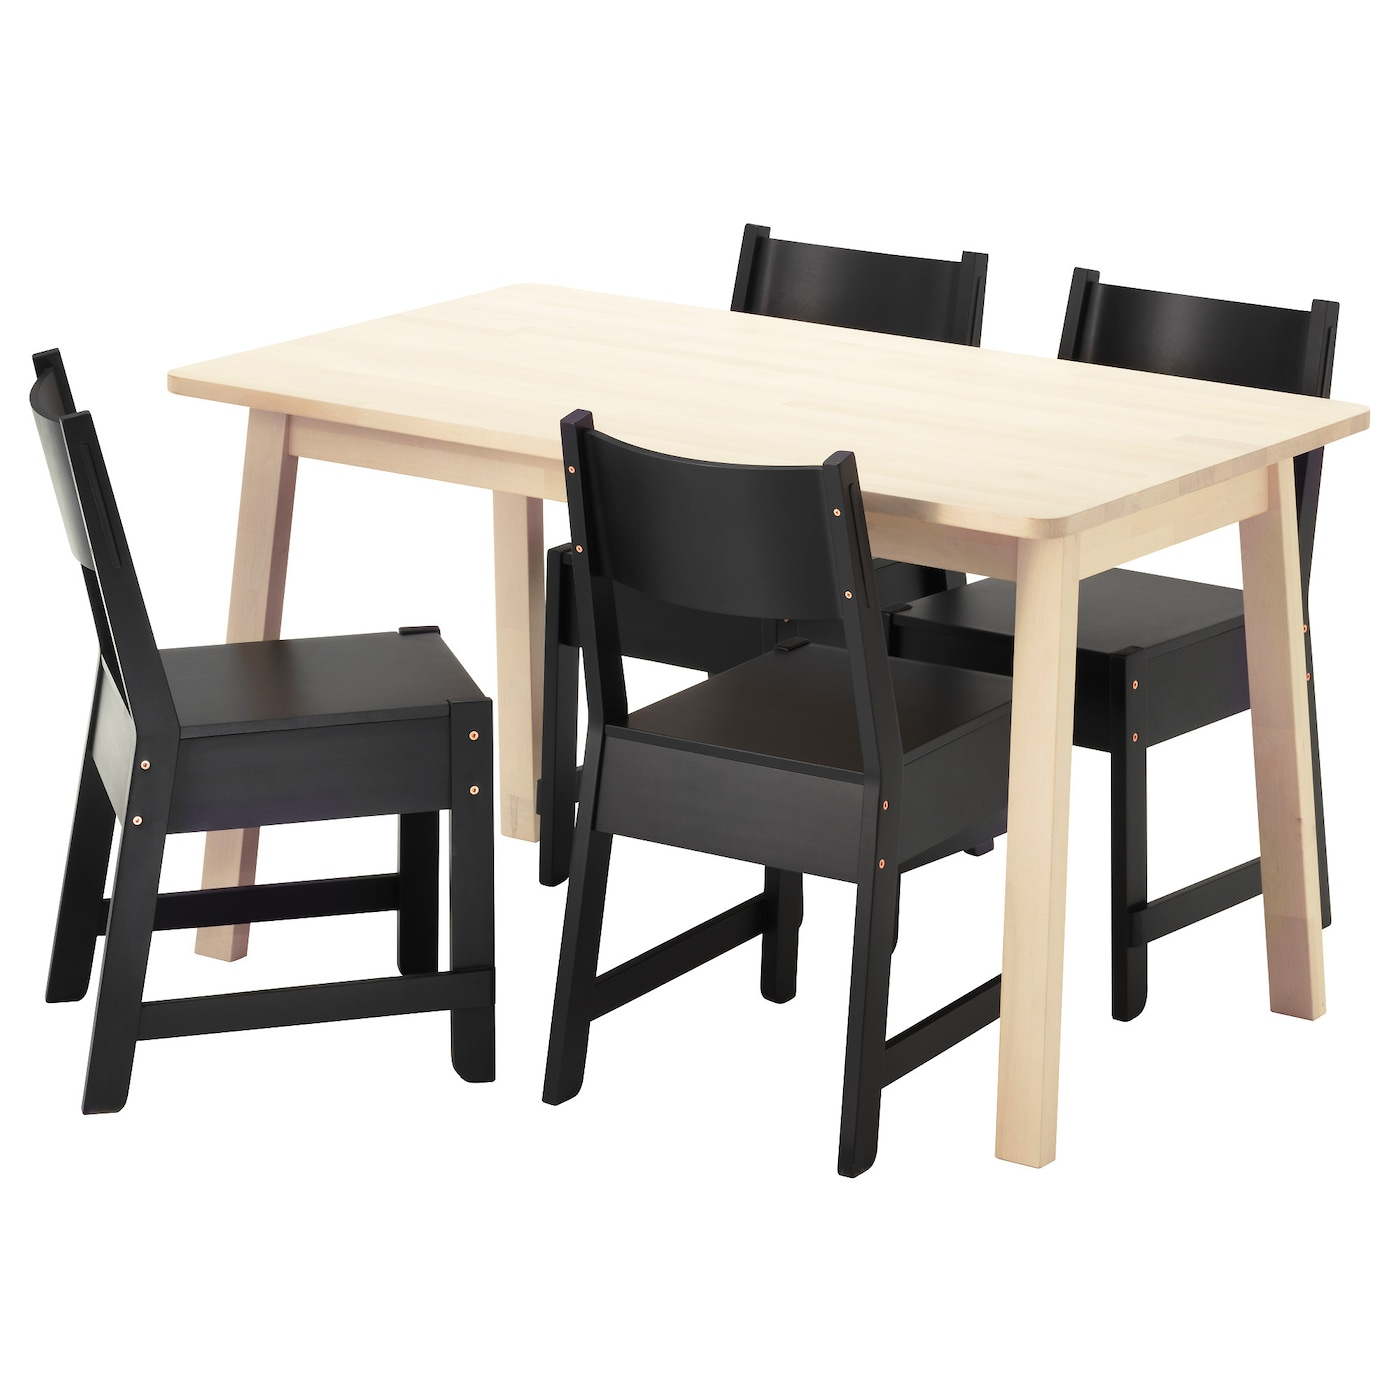 Dining Sets Up to 4 Seats IKEA Ireland : norrC3A5ker norrC3A5ker table and 4 chairs white birch black0447349pe597195s5 from www.ikea.com size 2000 x 2000 jpeg 260kB